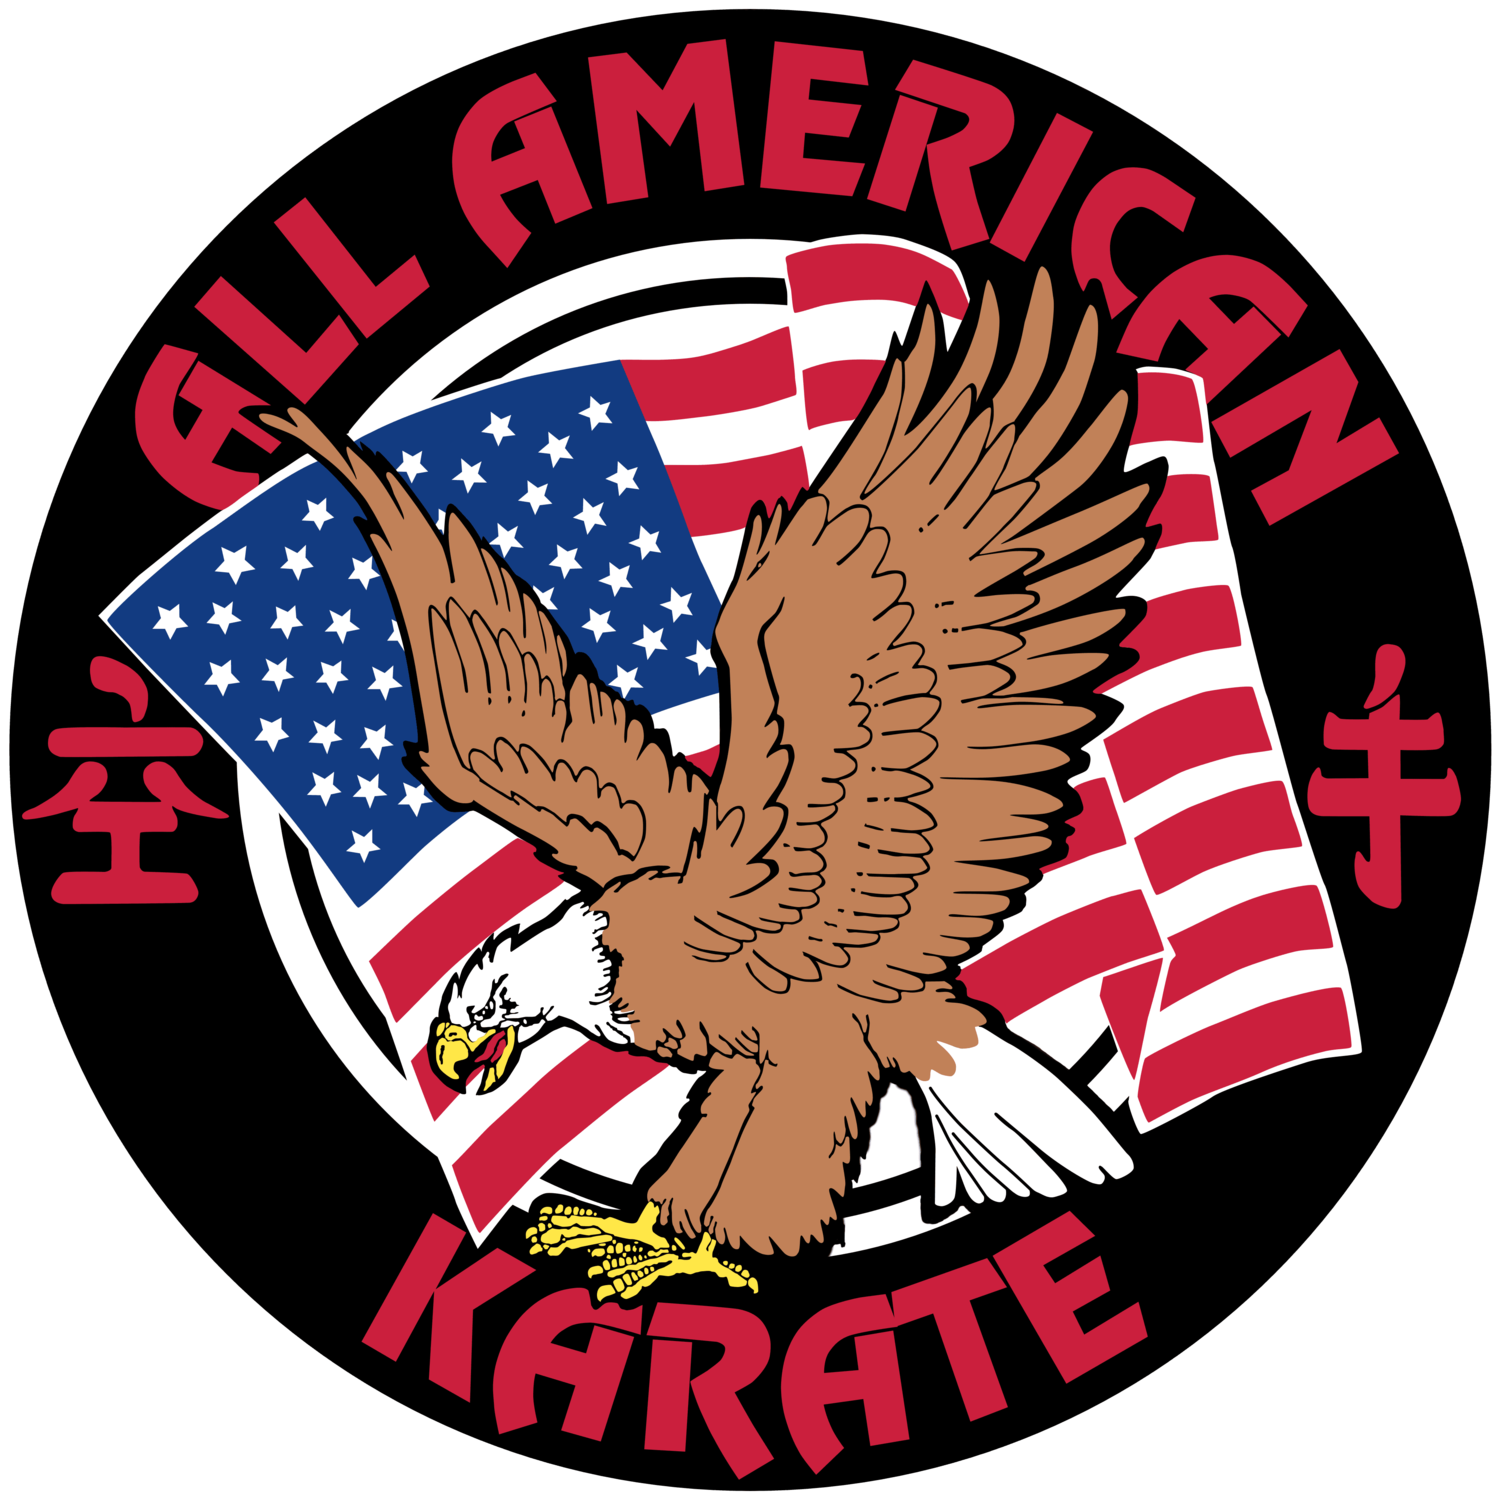 All American Karate - Family Self-Defense in Corona, CA